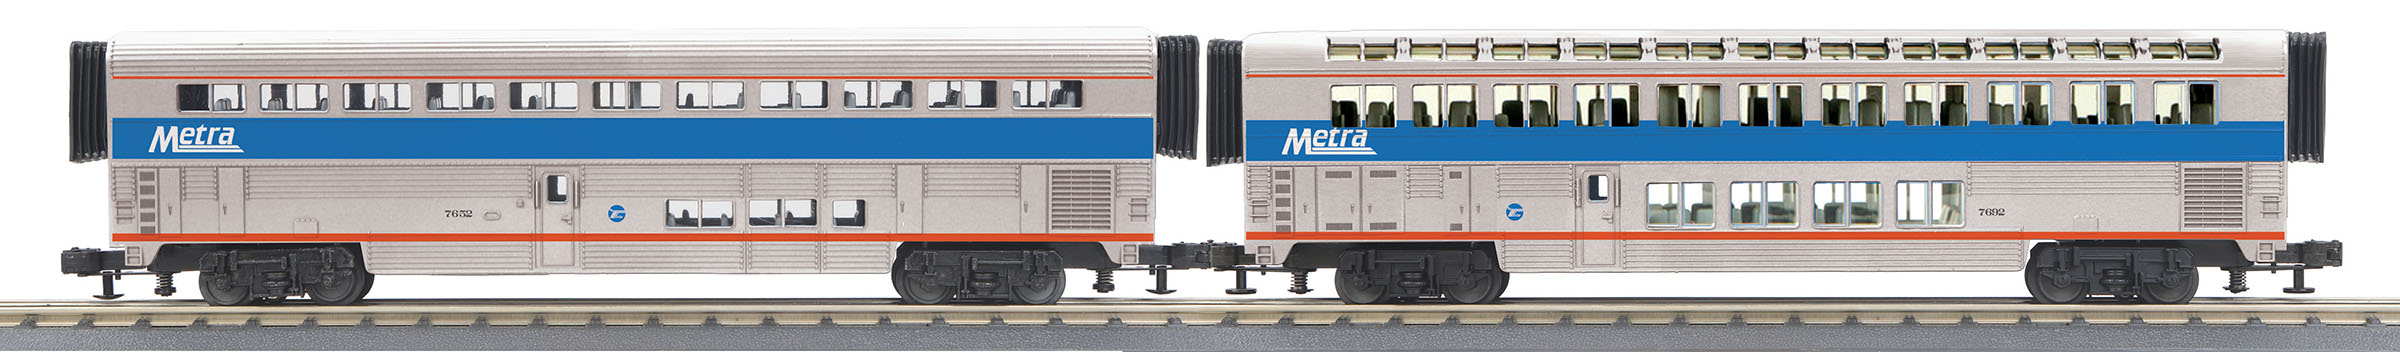 MTH 306545 O-31 SuperLiner Coach/Lounge Set, METRA #7658 (2) MTH306545